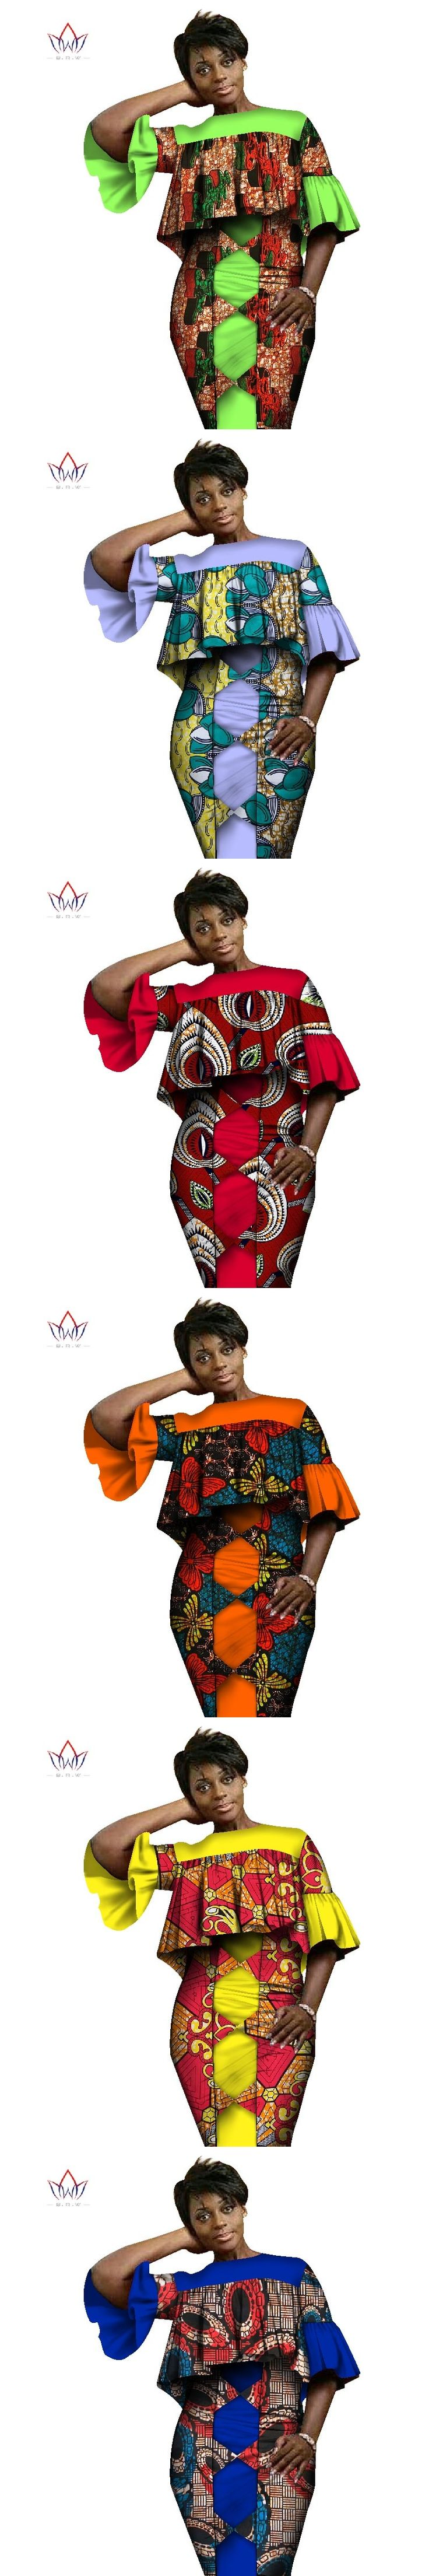 Loose Women Clothing 2017 African Strap Dress+Top Lady Suits Dashiki Plus Size Suits Traditional African Clothing WY1431